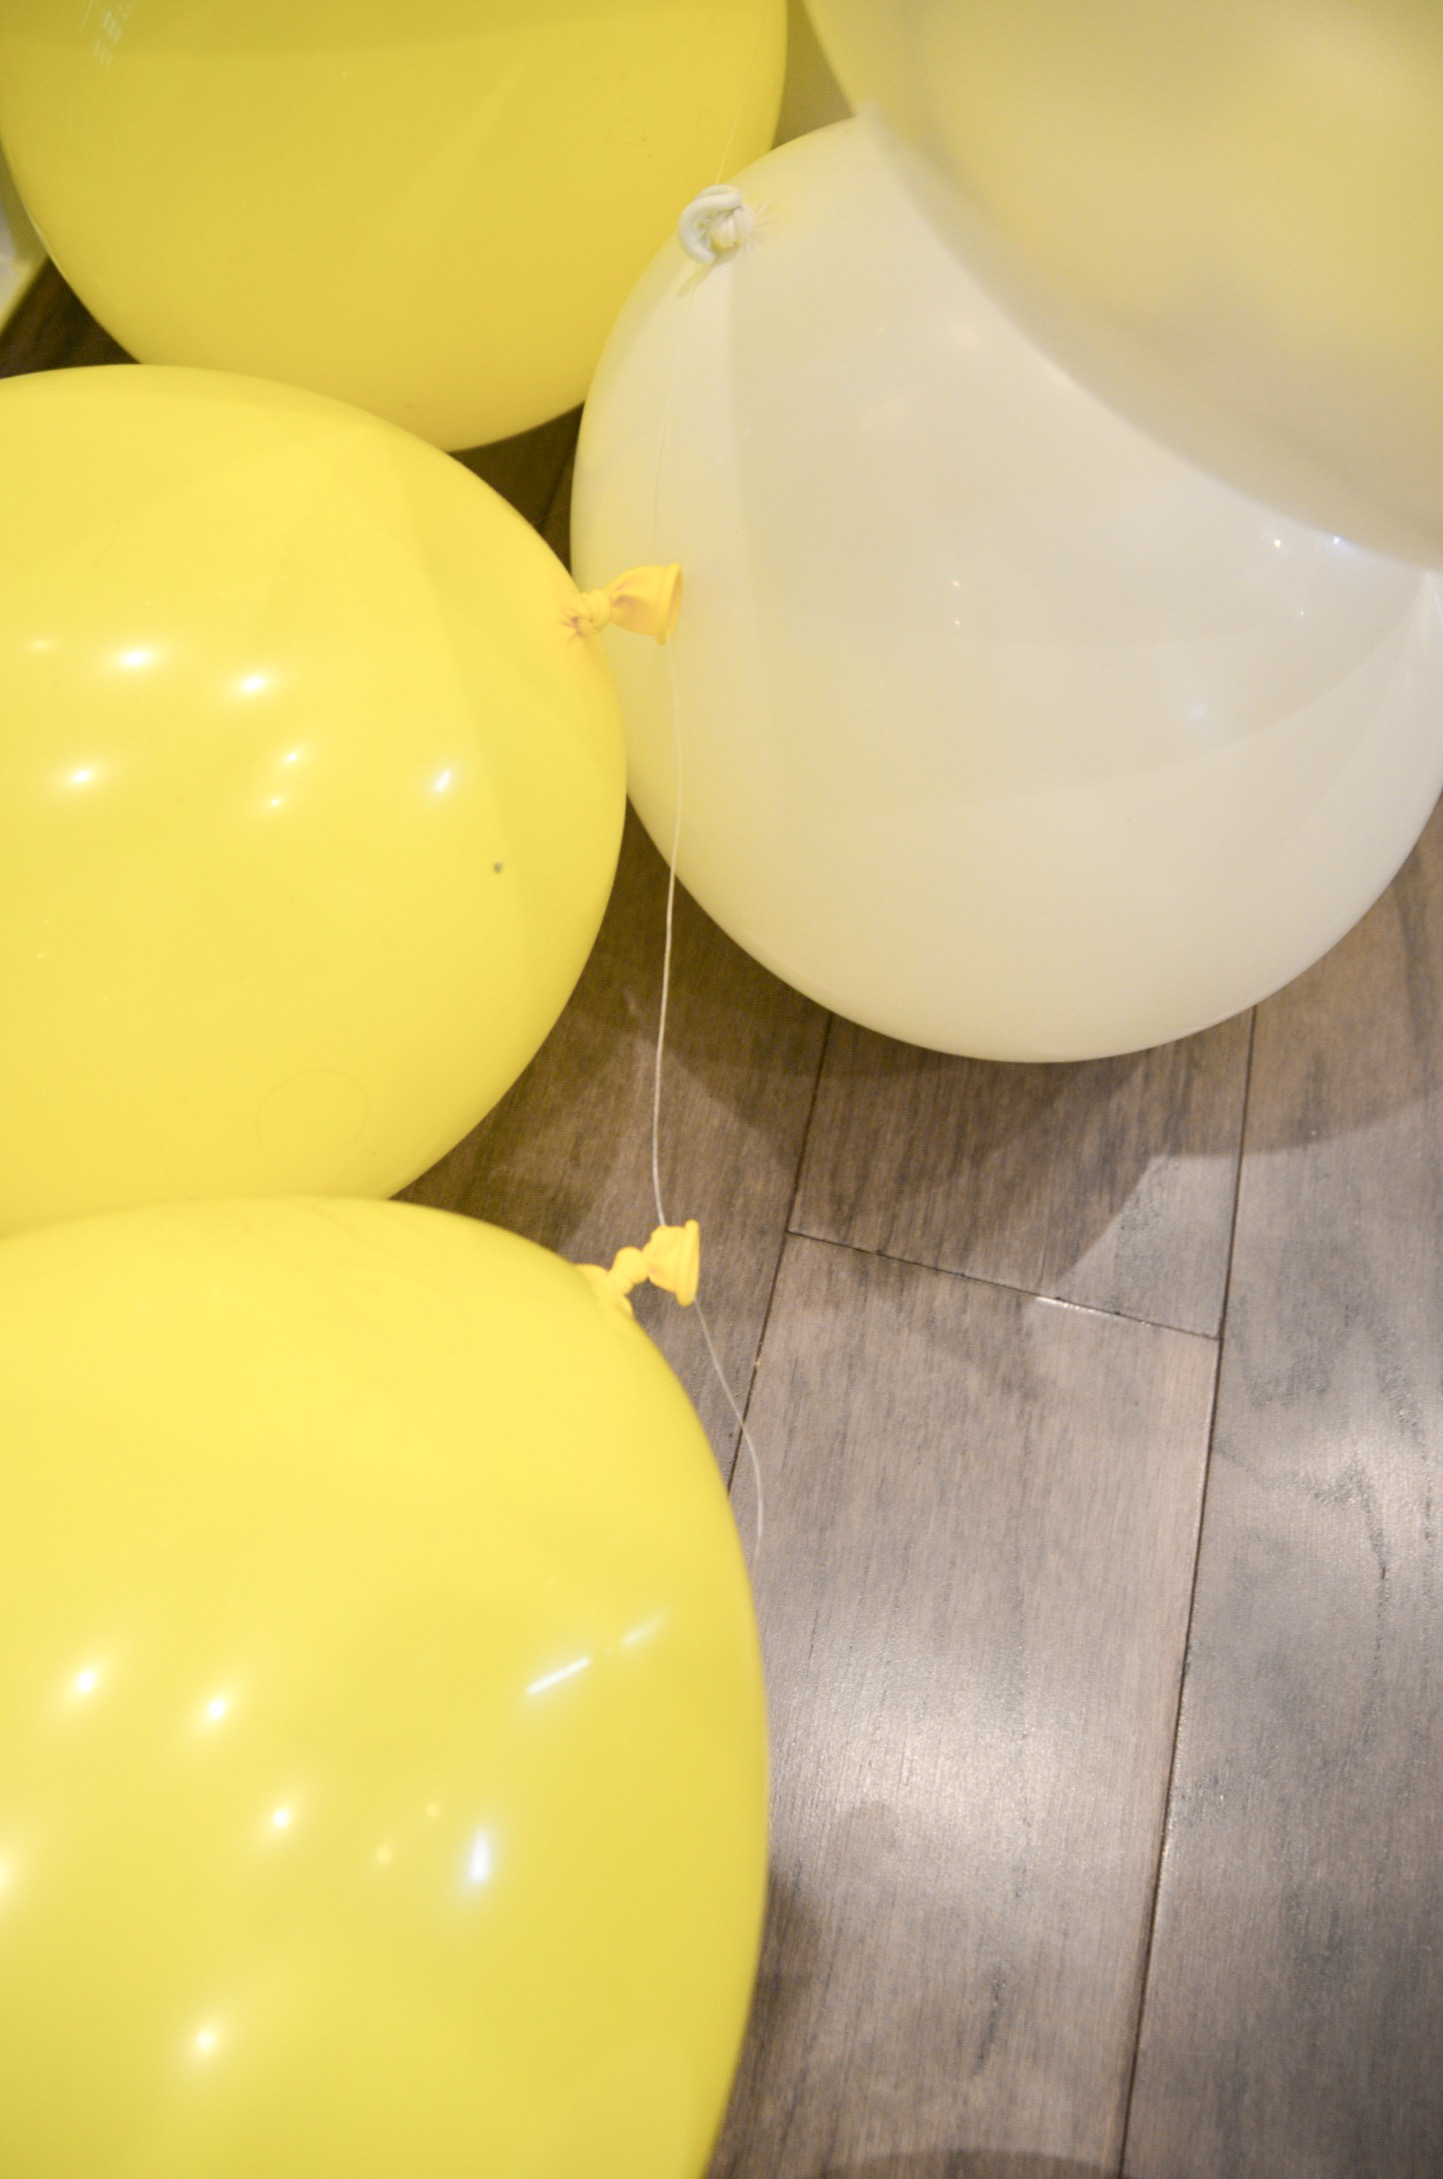 How To Make A Balloon Arch Diy Adrianna Bohrer